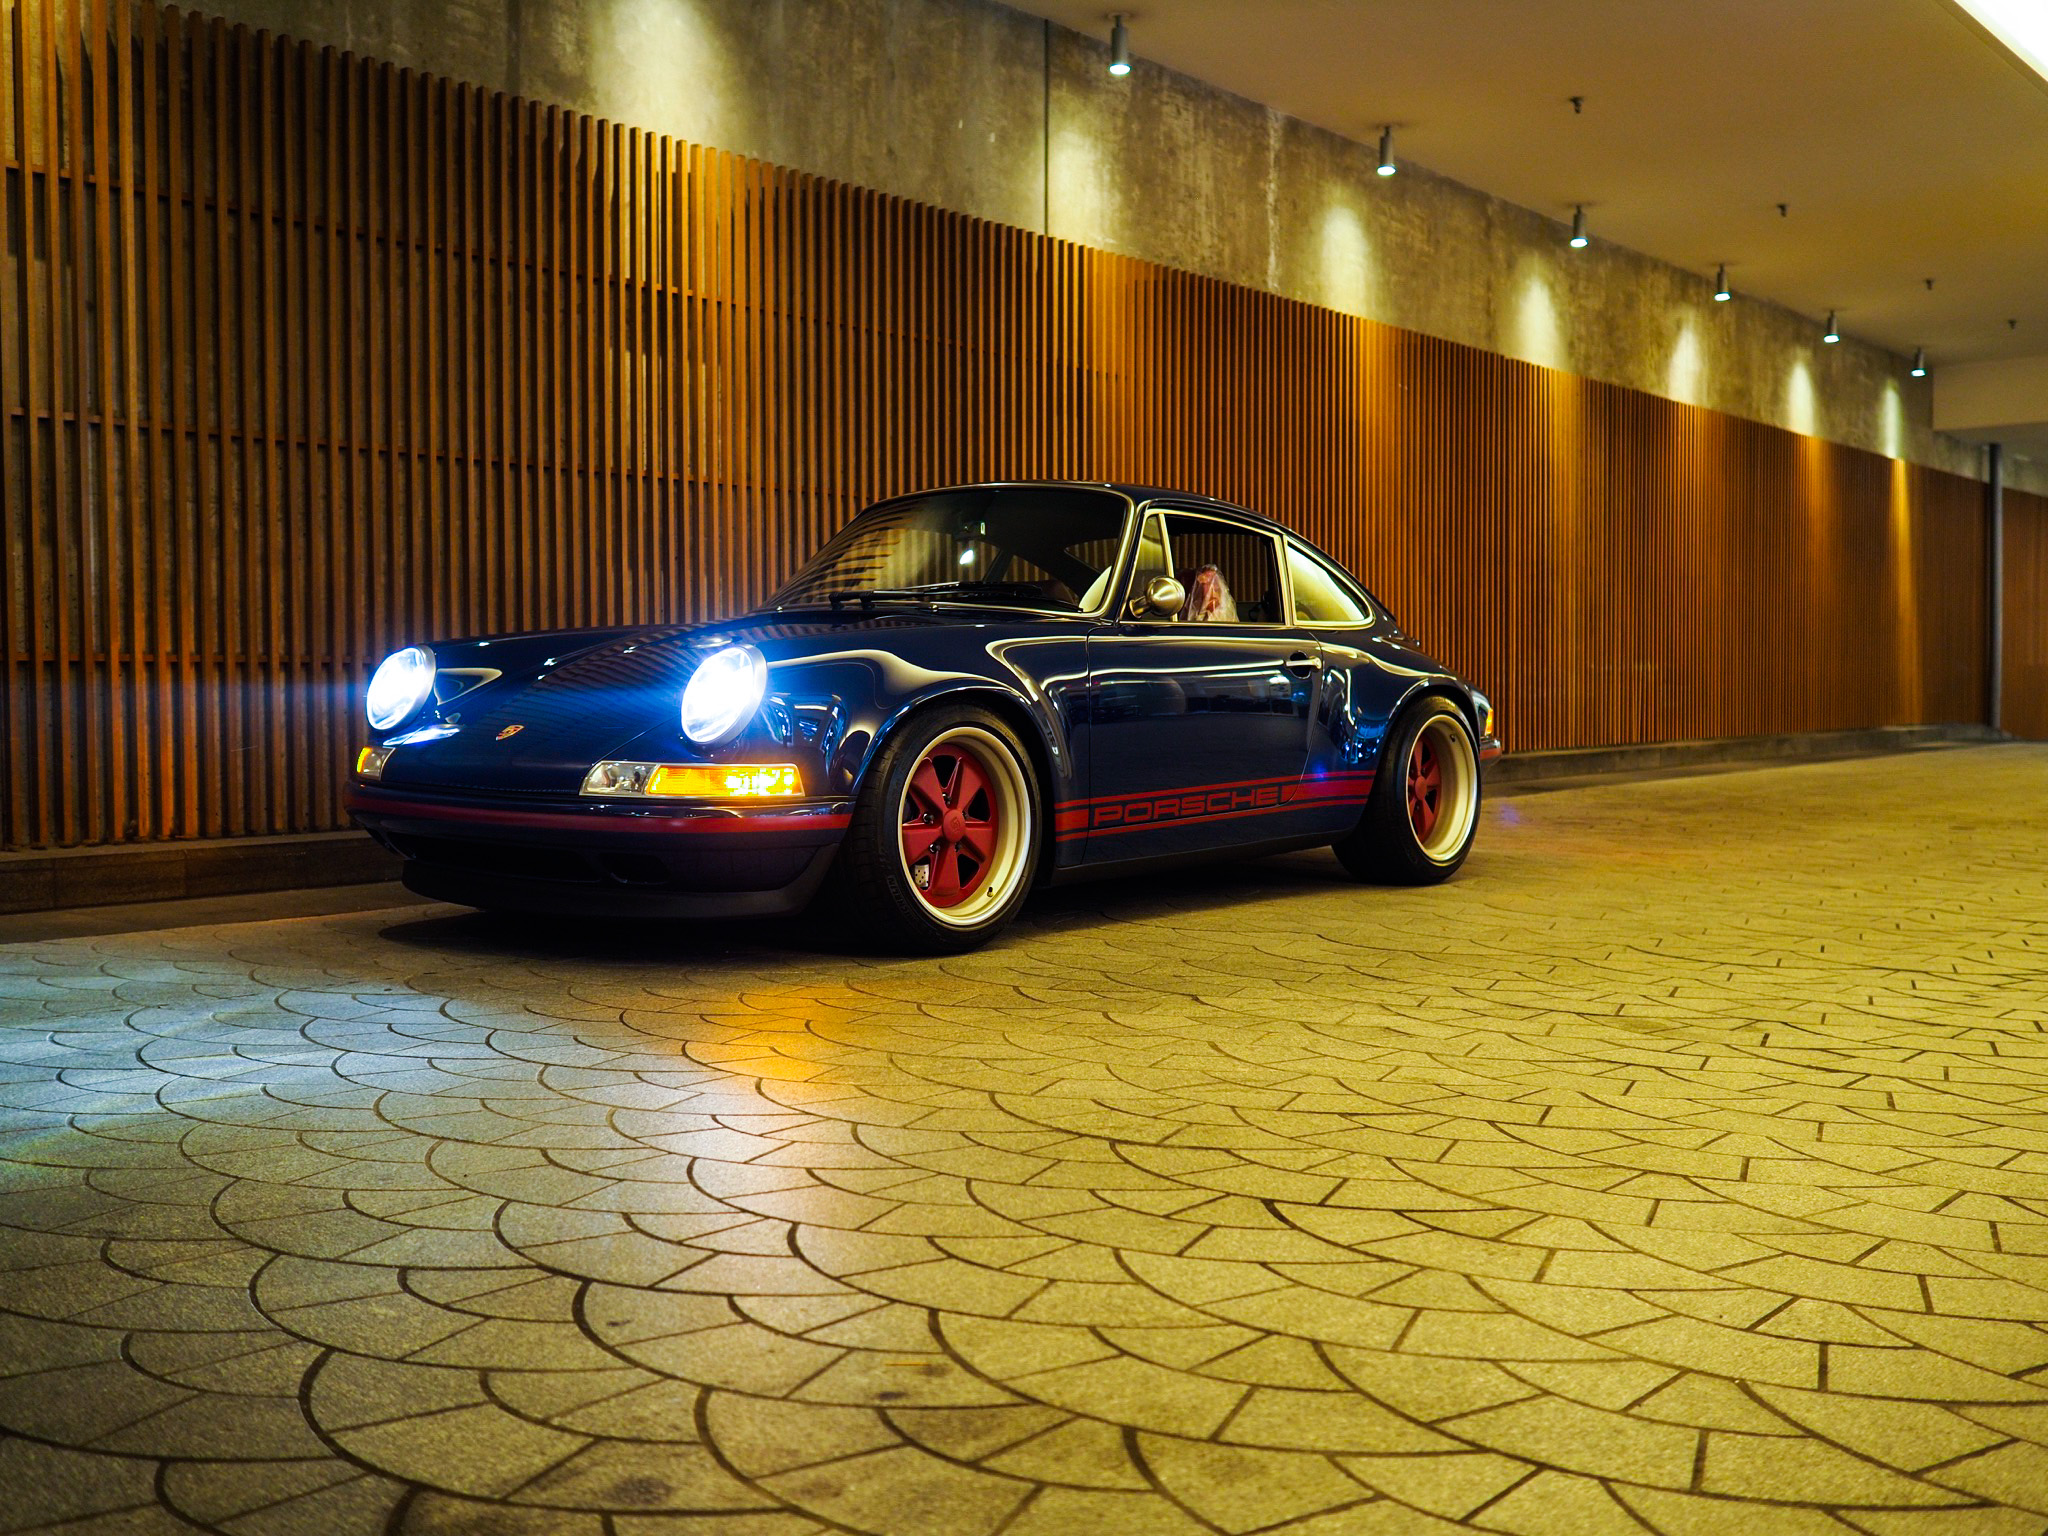 Review Porsche 911 Restored By Singer Vehicle Design